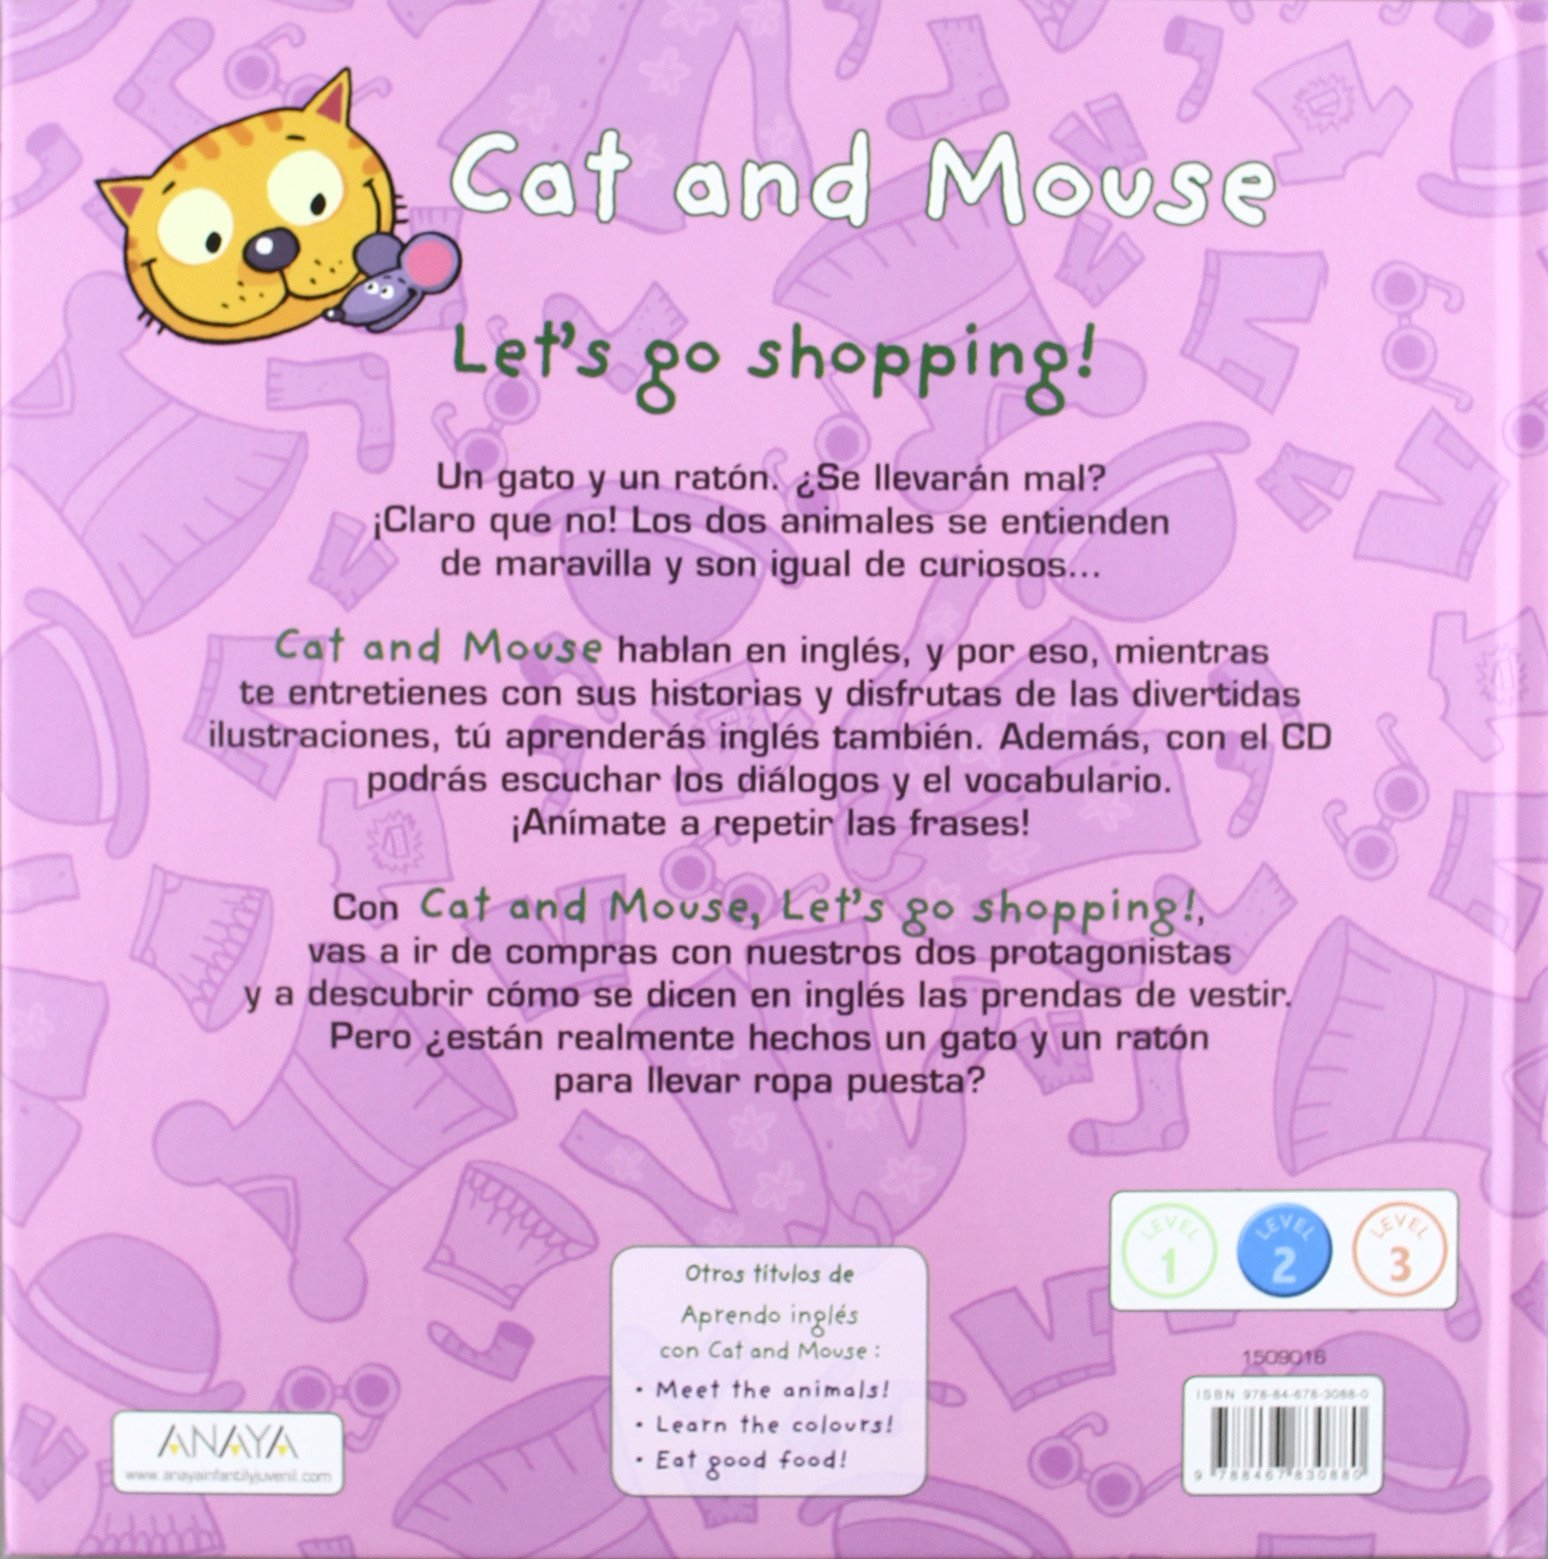 Cat and mouse. Lets go shopping!: Stéphane Husar, Loïc Méhée: 9788467830880: Amazon.com: Books